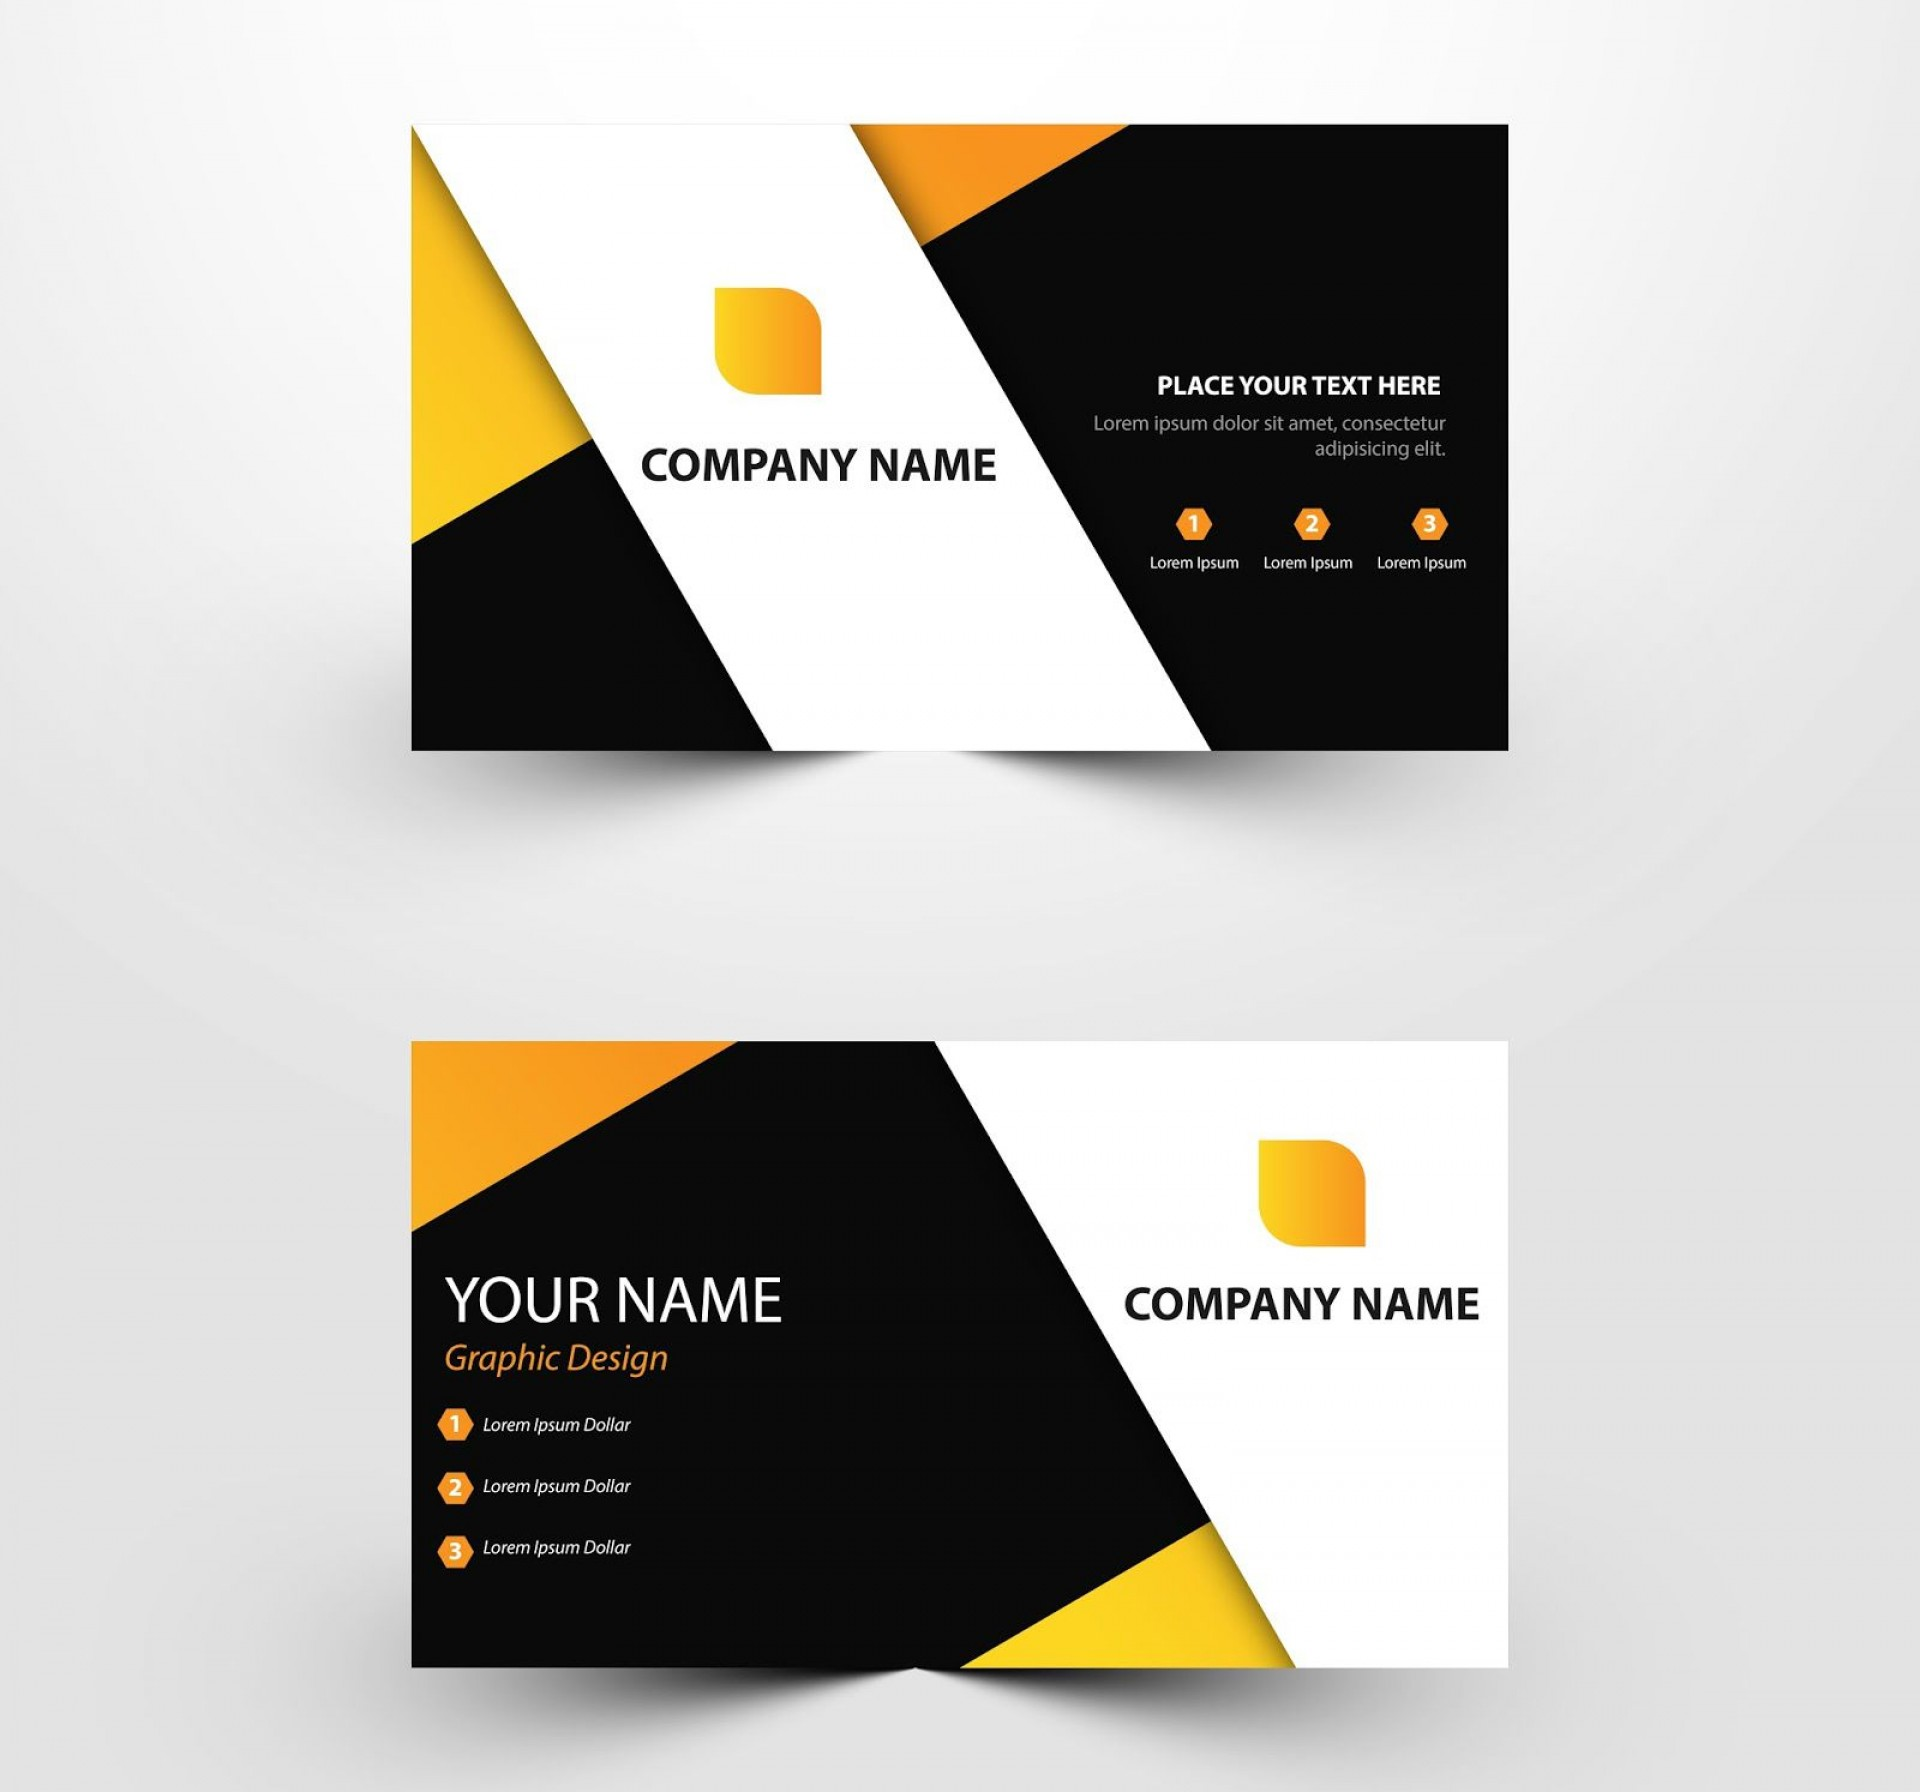 009 Stupendou Free Download Busines Card Template Highest Clarity  Templates Blank Microsoft Word1920